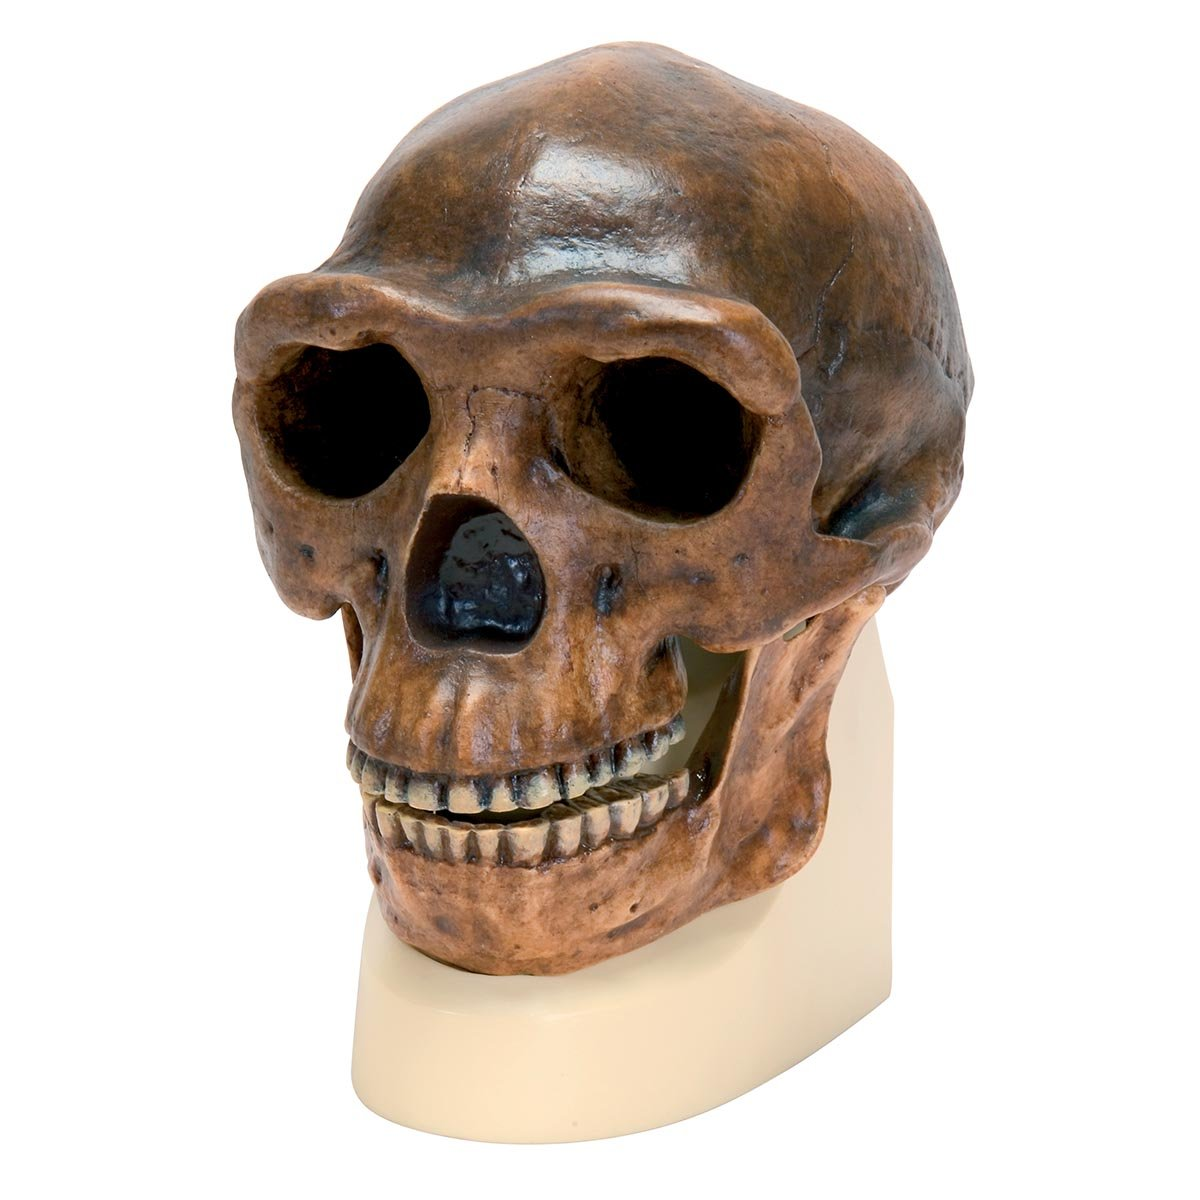 3B Scientific VP750/1 Schä delreplikat Homo erectus pekinensis (Weidenreich, 1940) 3B Scientific GmbH 1001293 3B  VP750/1